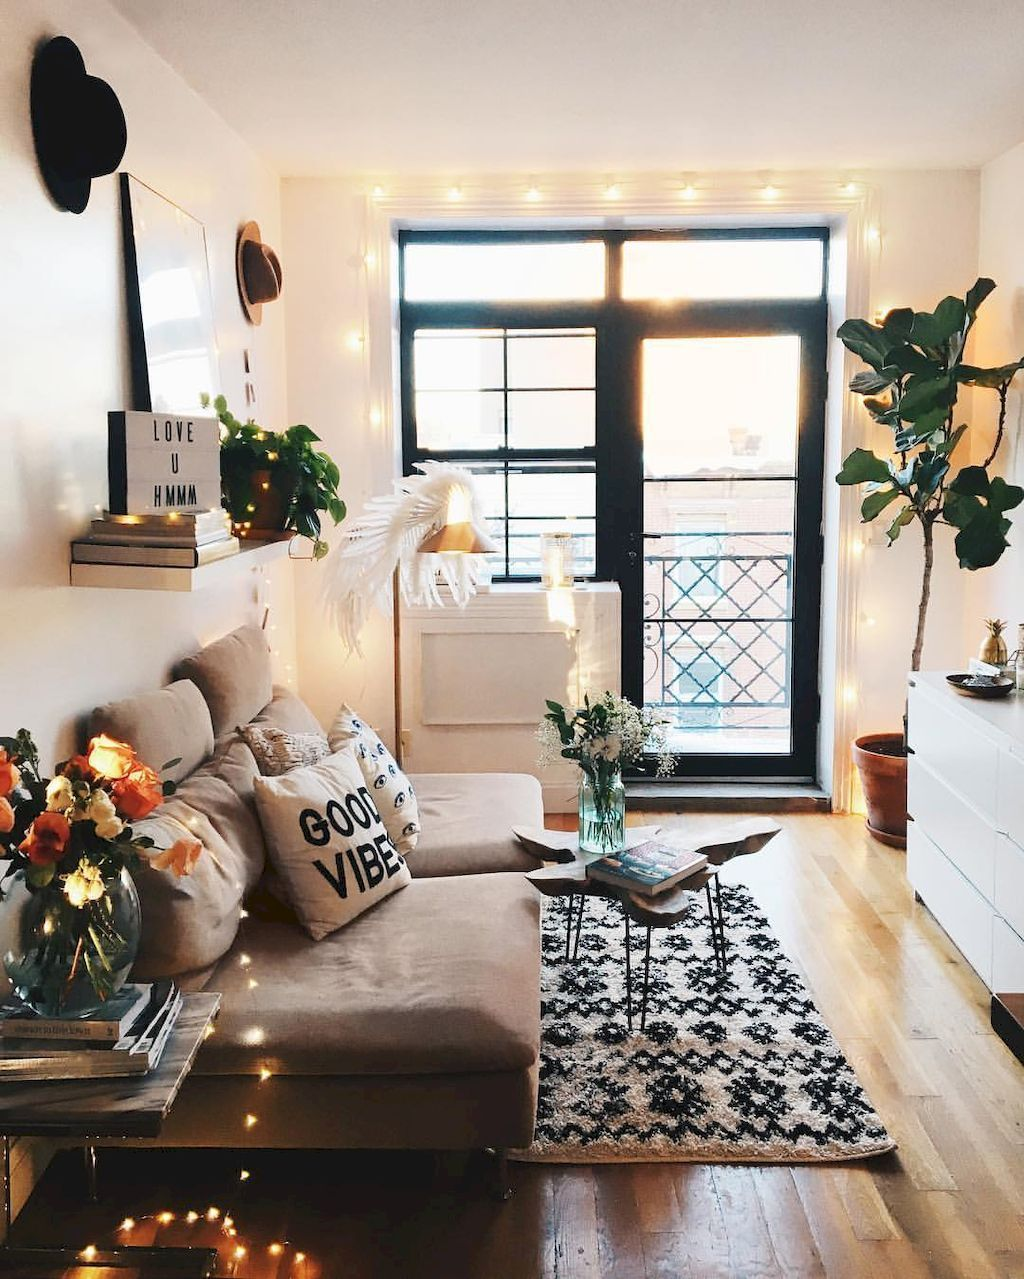 Cozy Small Living Room Decor For Apartment Ideas 59 Small Apartment Living Room College Apartment Decor Home Decor Bedroom